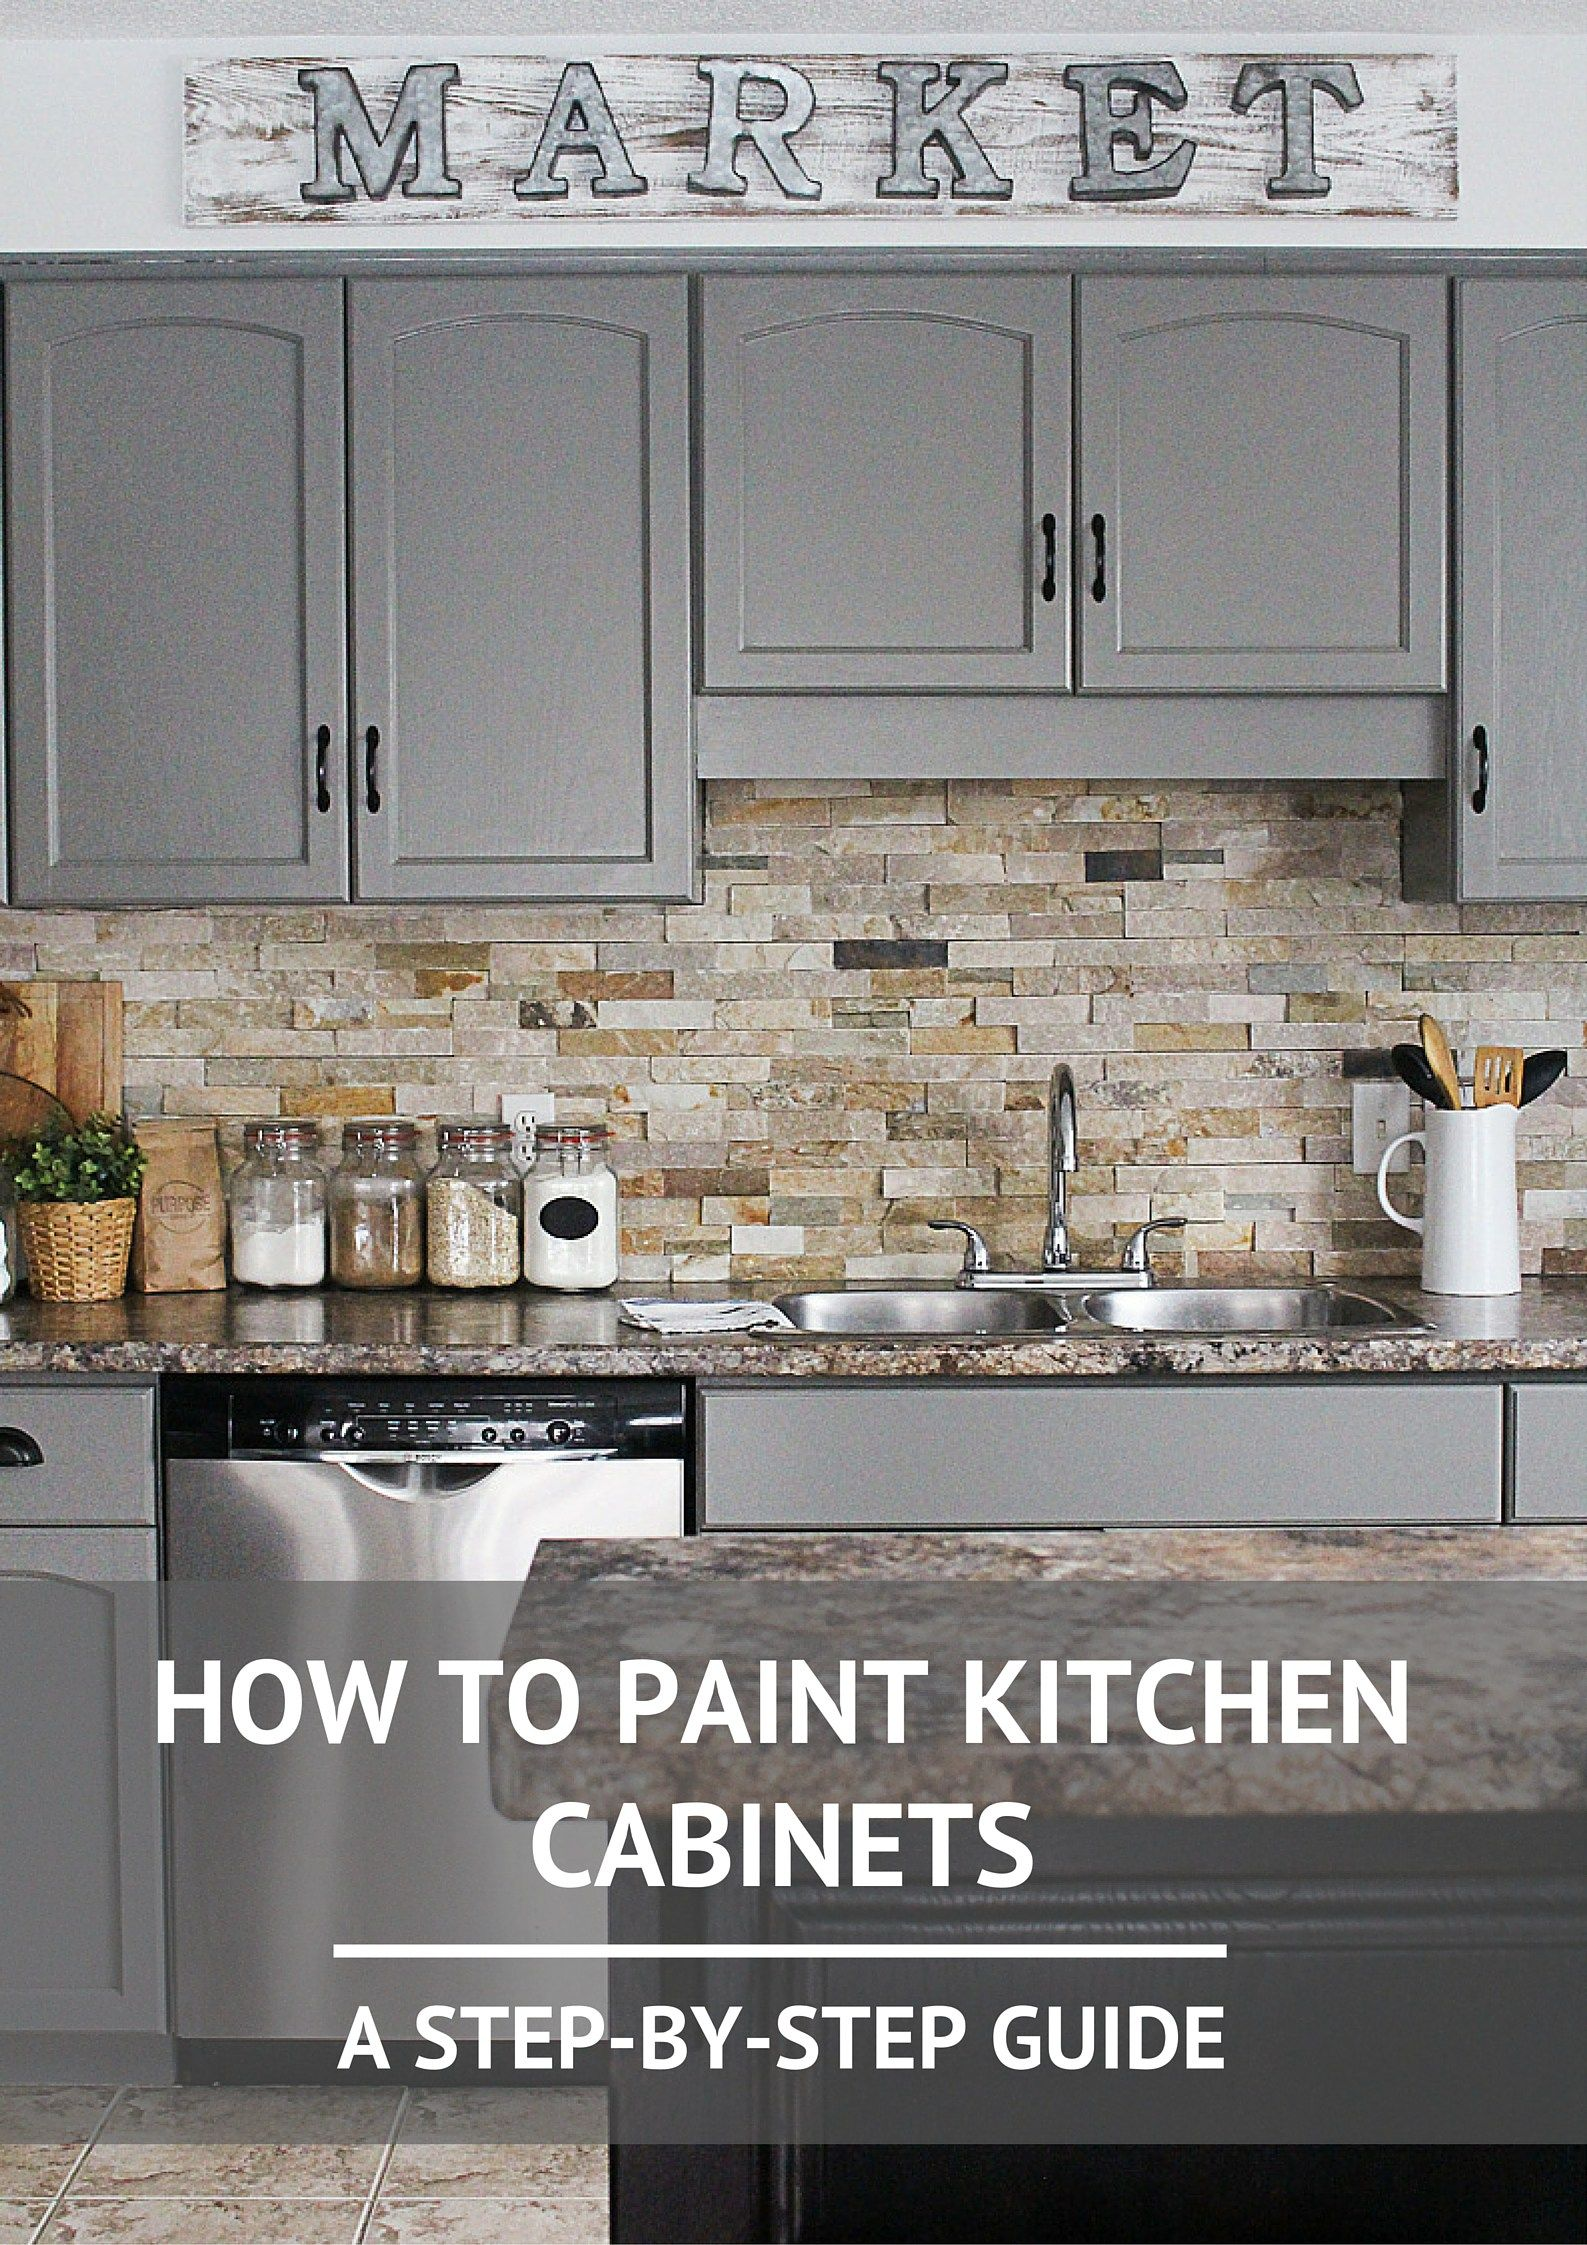 how to paint kitchen cabinets (with images) | kitchen